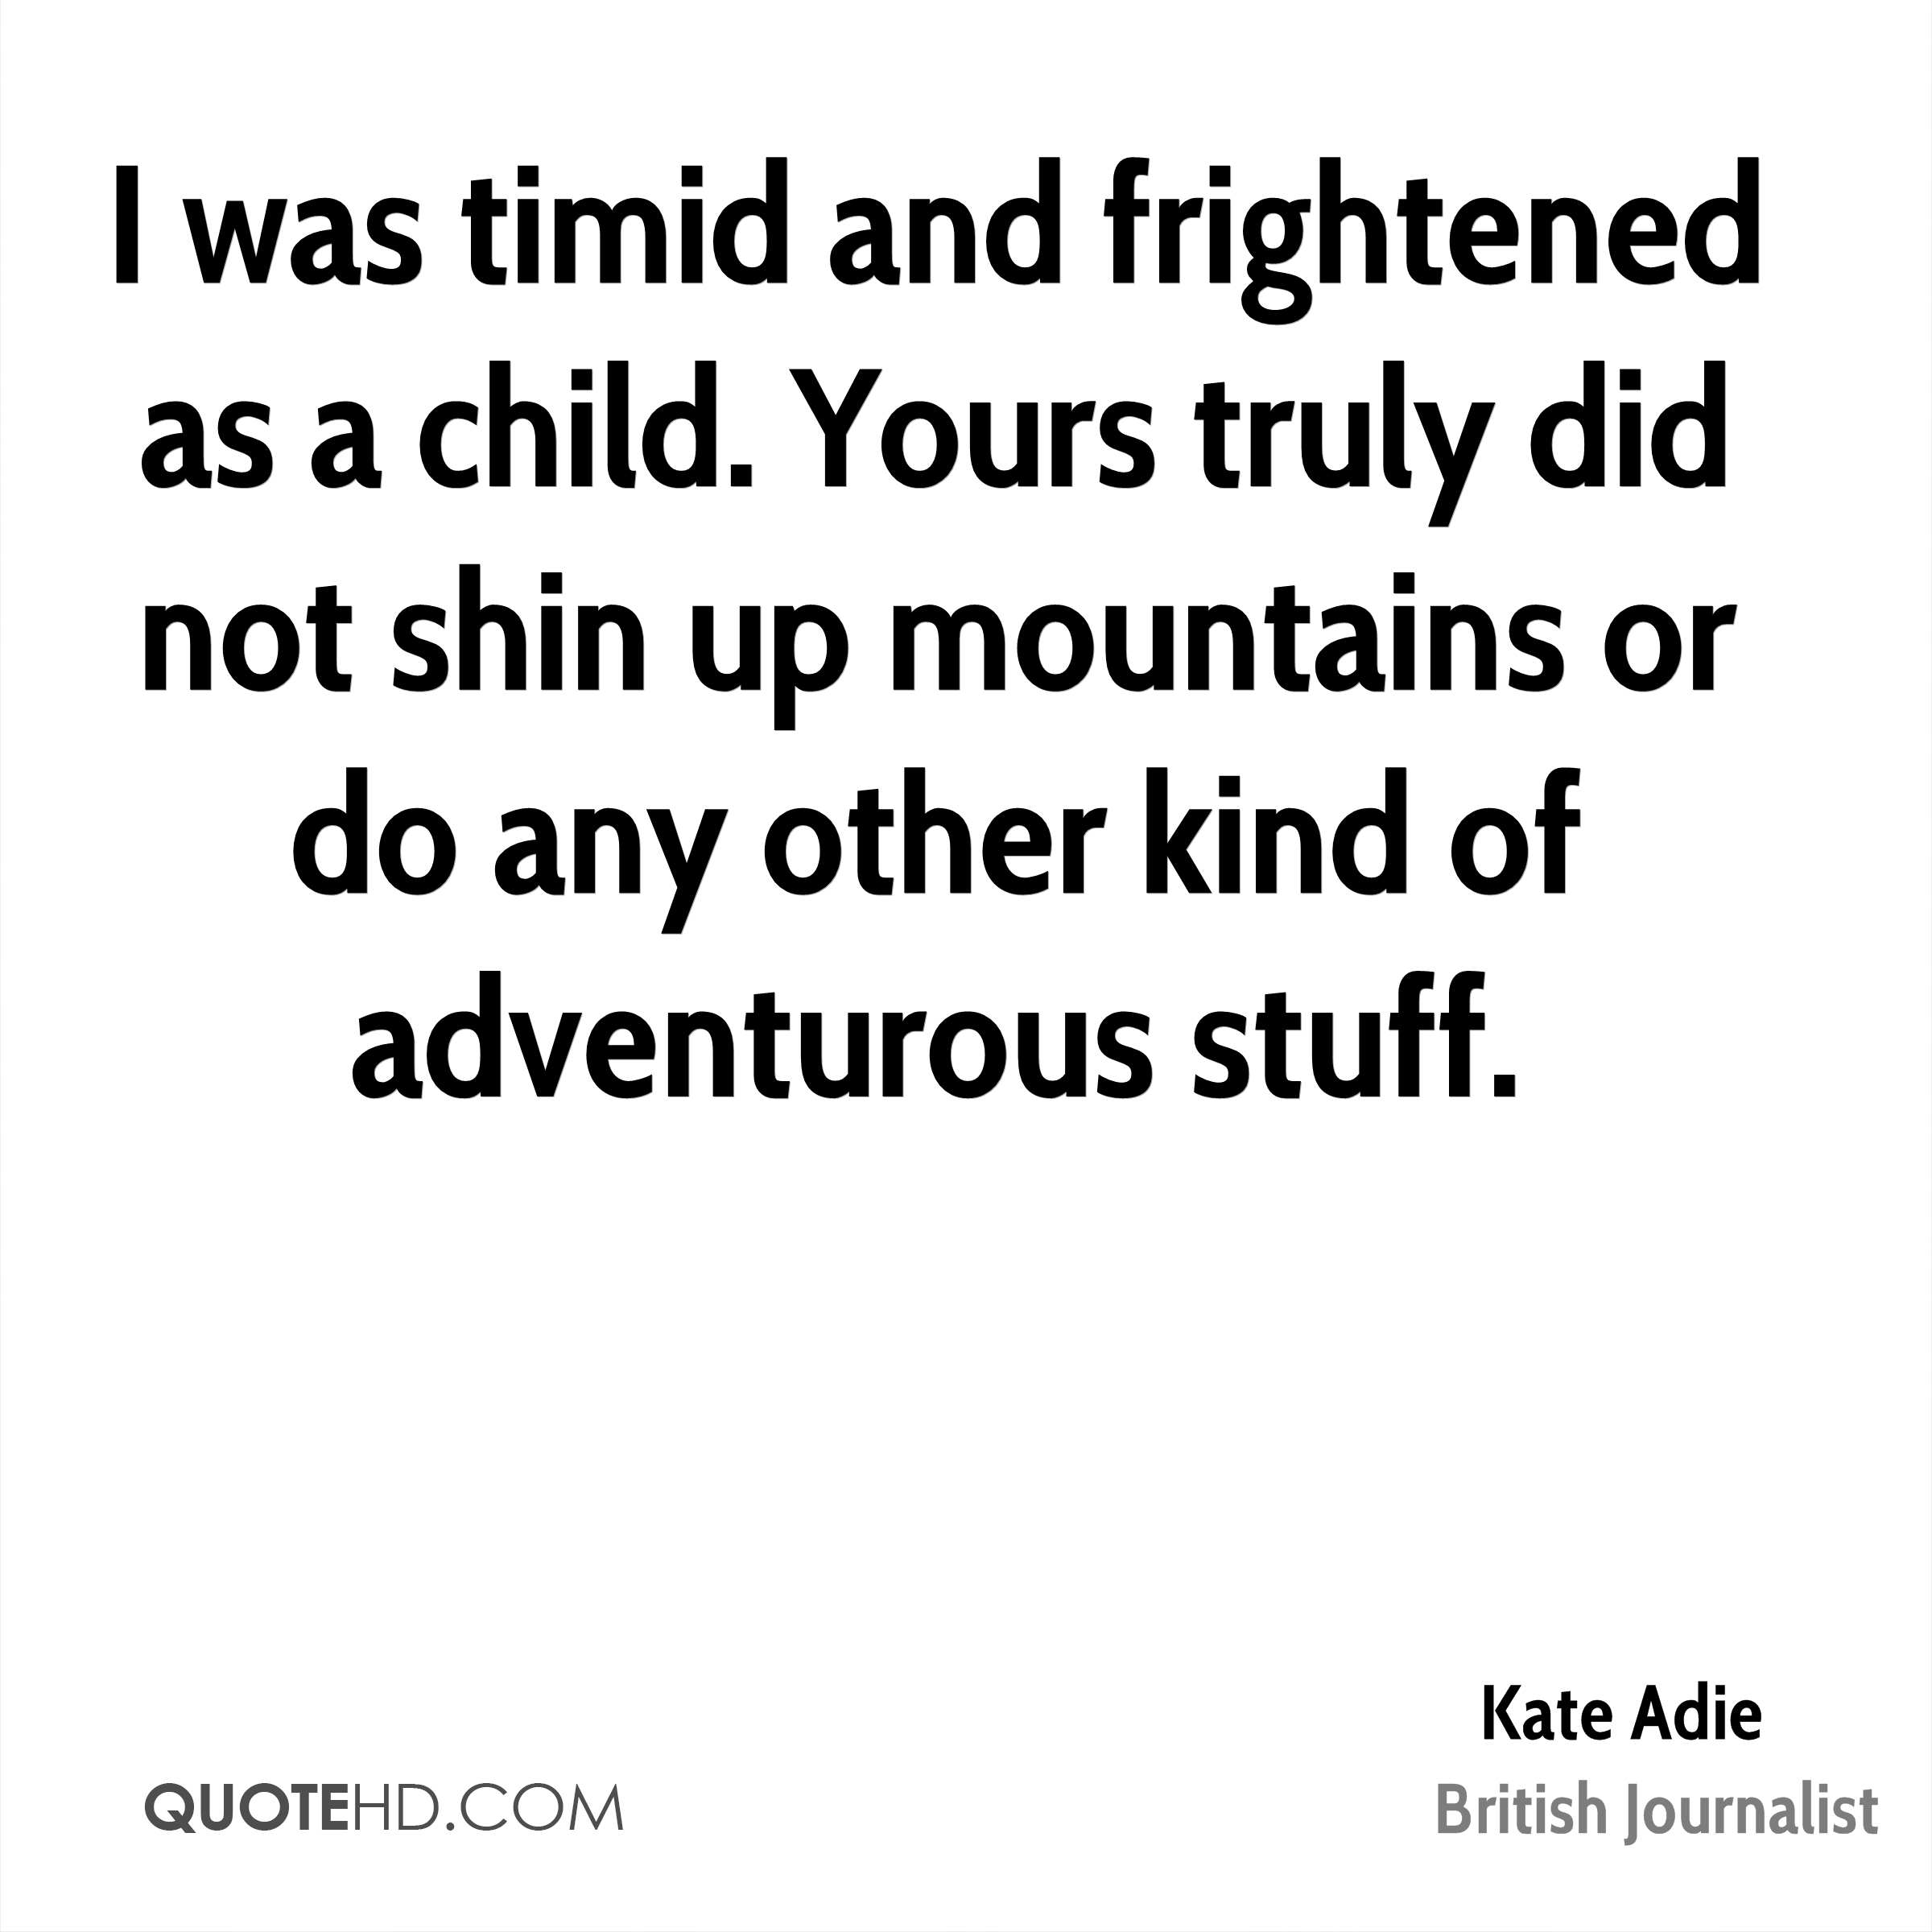 I was timid and frightened as a child. Yours truly did not shin up mountains or do any other kind of adventurous stuff.